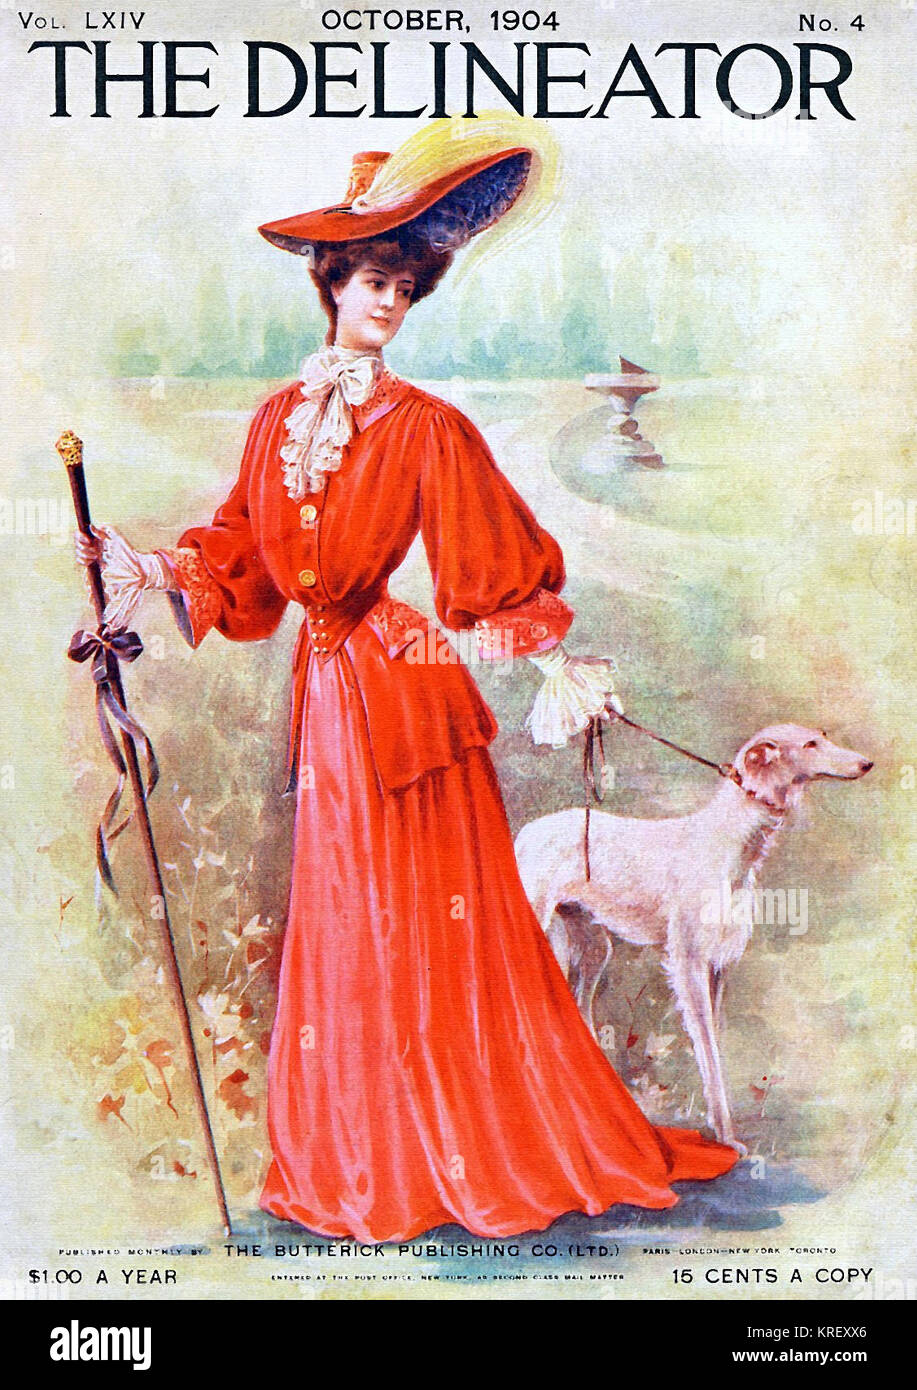 October 1904 Delineator Fashion Magazine - Stock Image